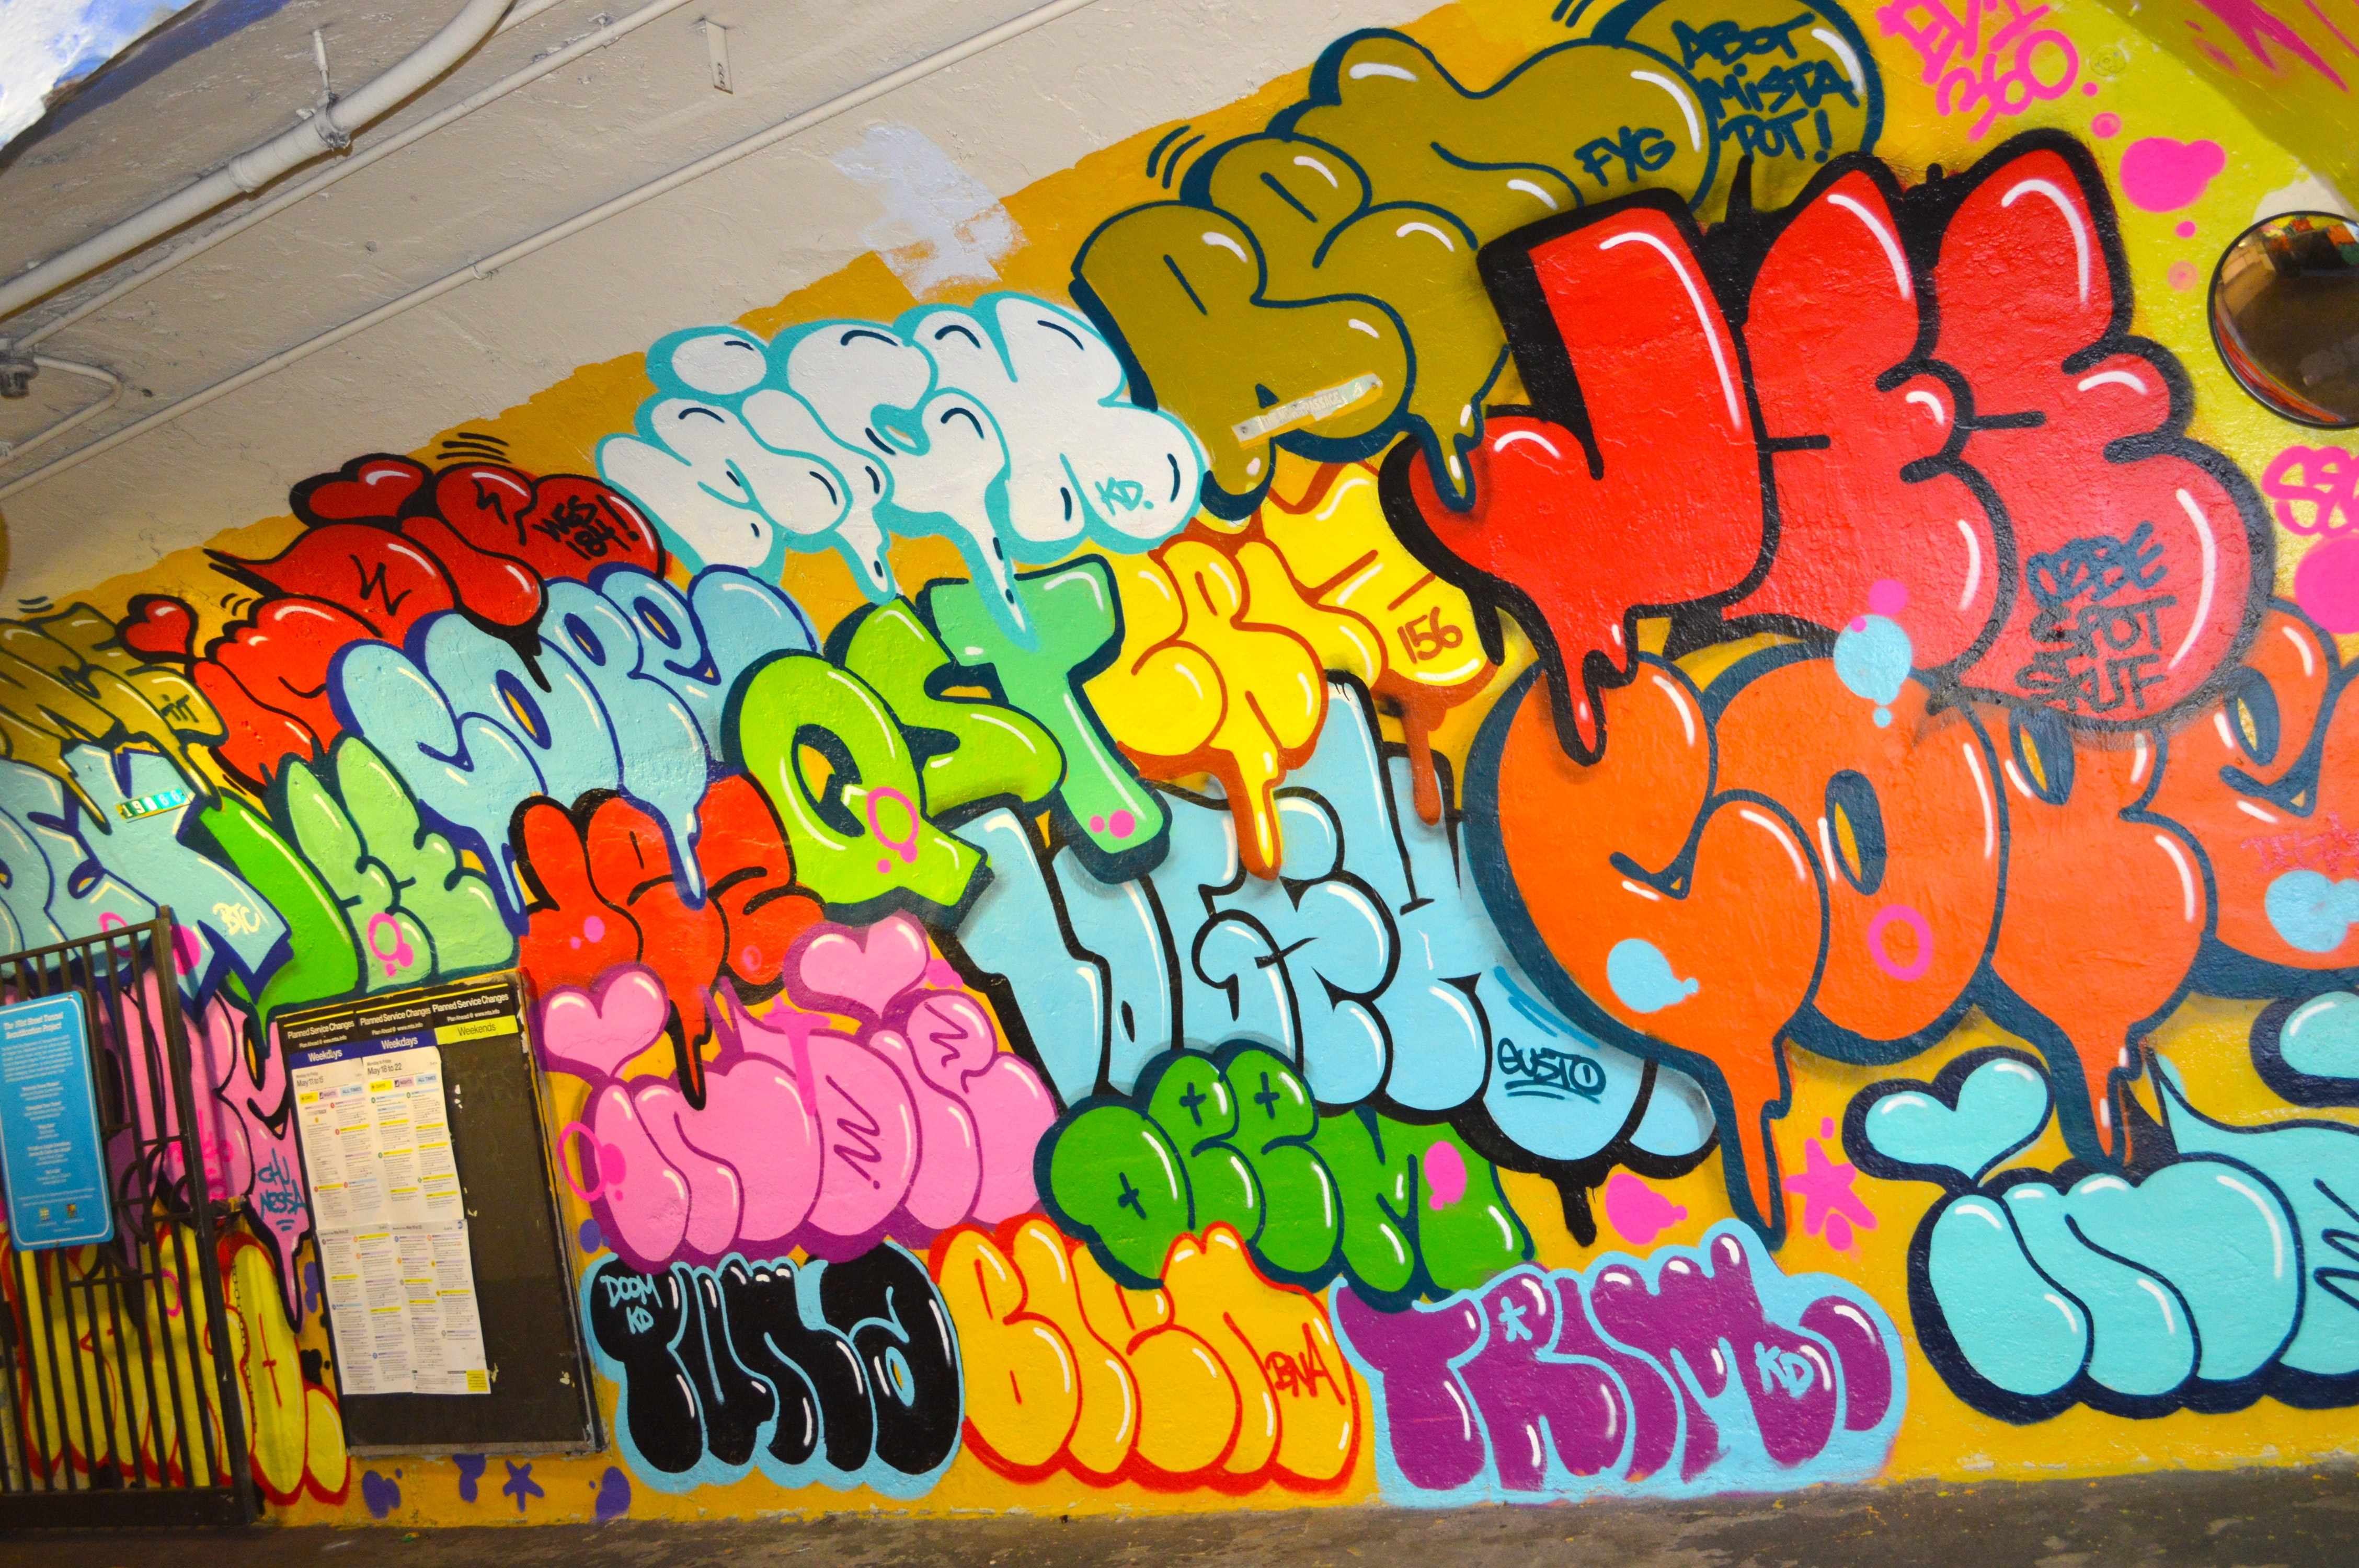 Classic NYC Throw Ups by COPE, Indie 184 and more